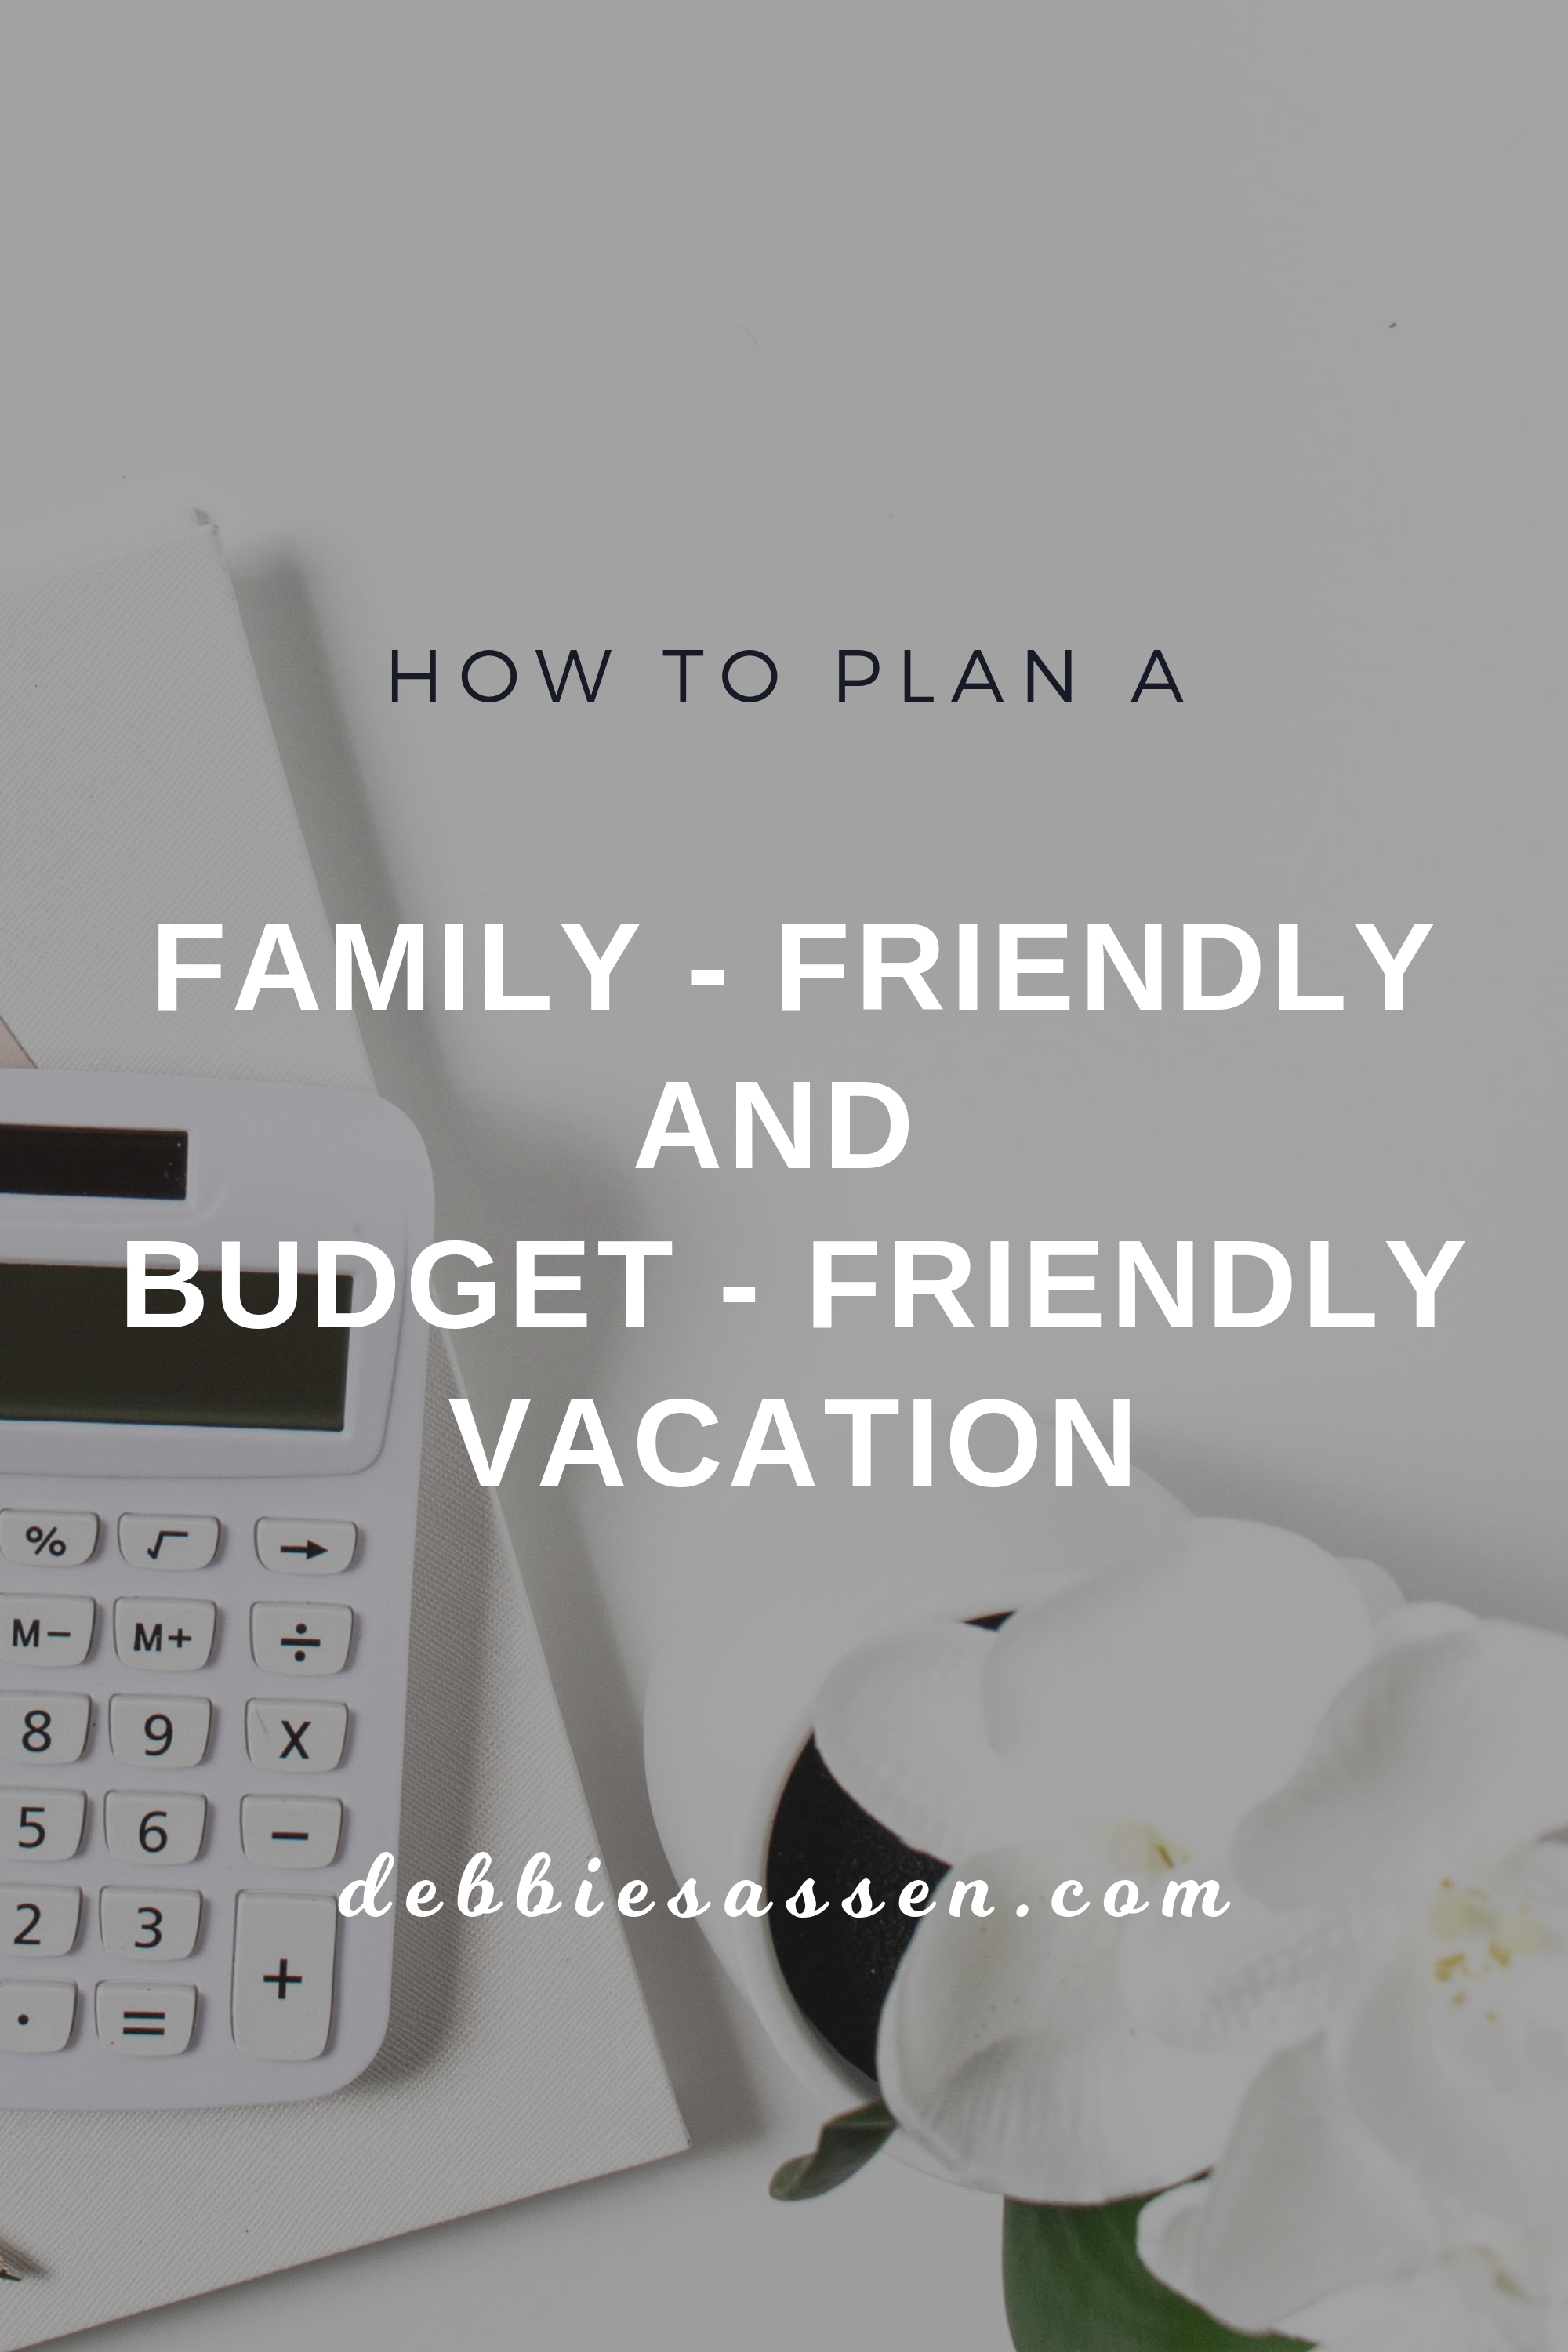 How to plan a Family Friendly and Budget Friendly Vacation Pin - Debbie Sassen